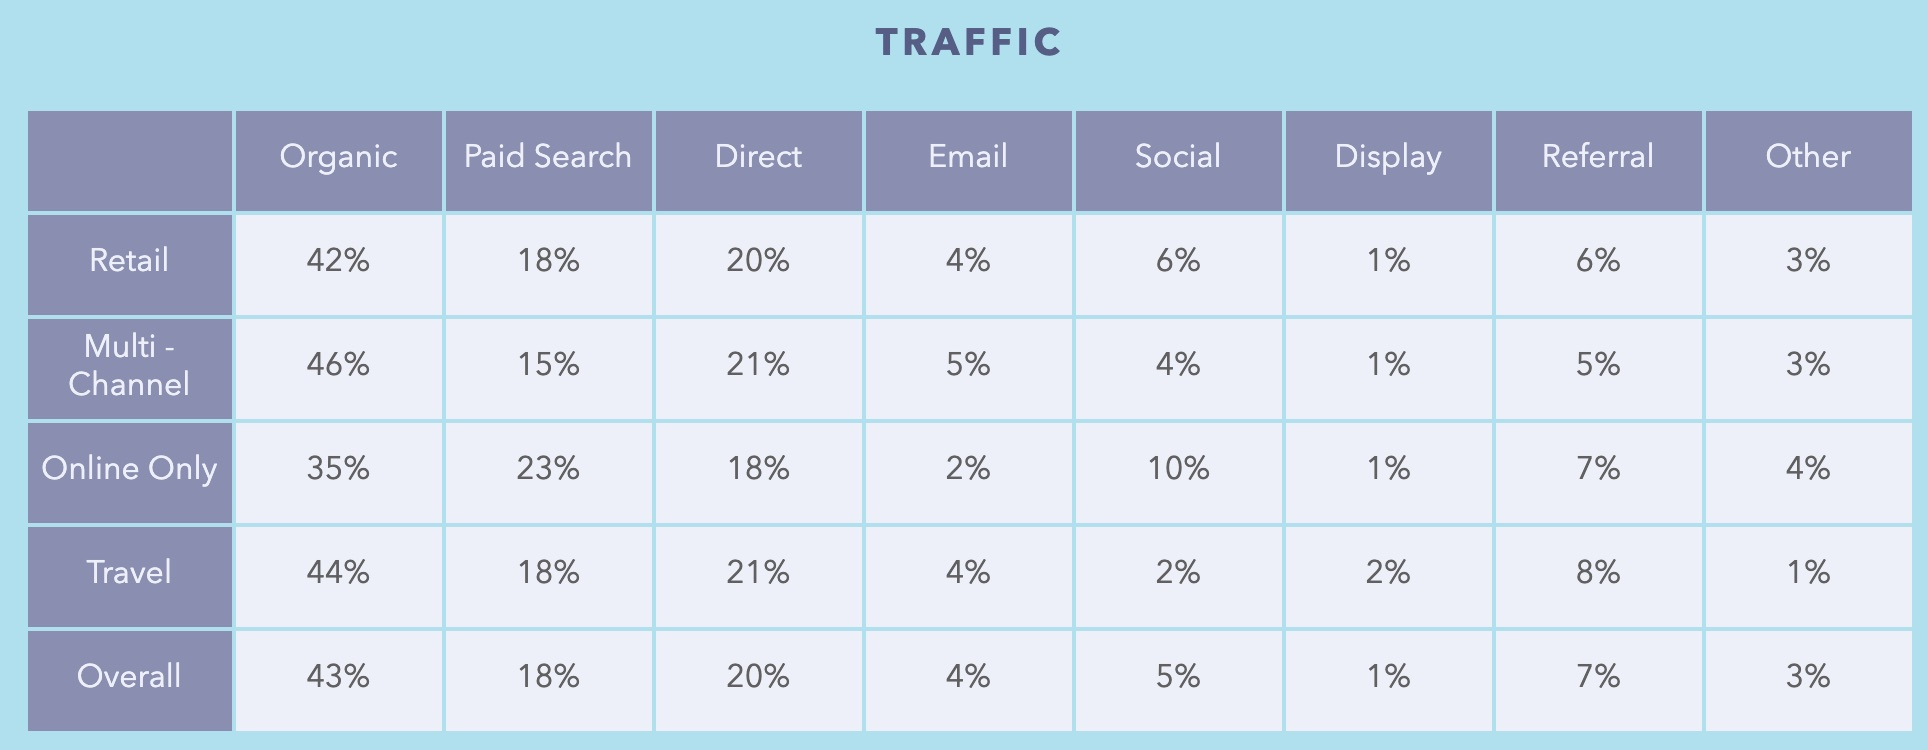 Digital traffic table